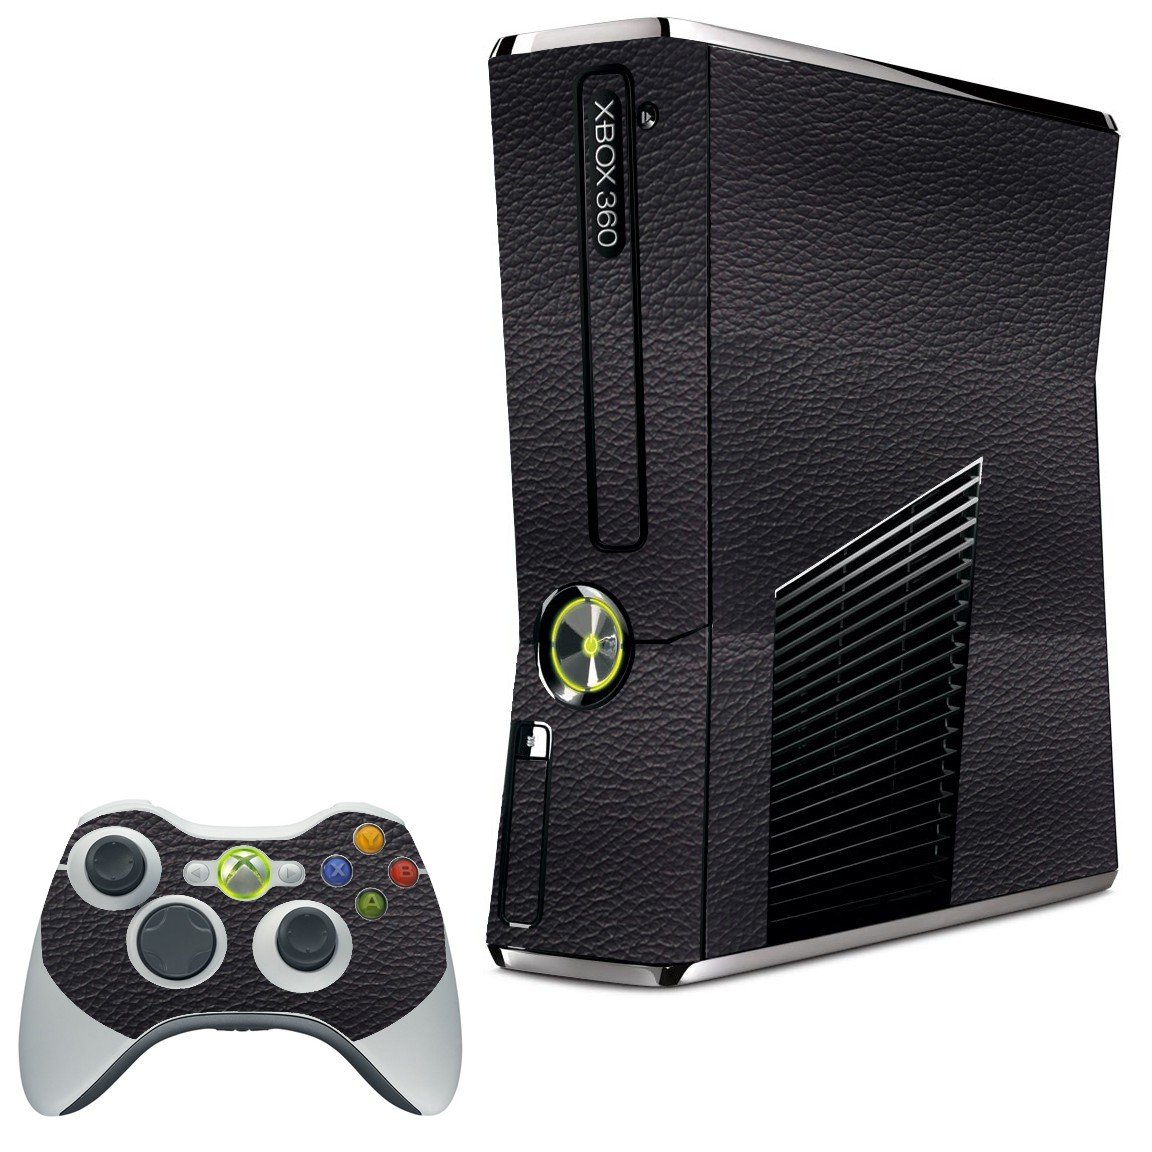 BLACK LEATHER XBOX 360 SLIM GAME CONSOLE SKIN